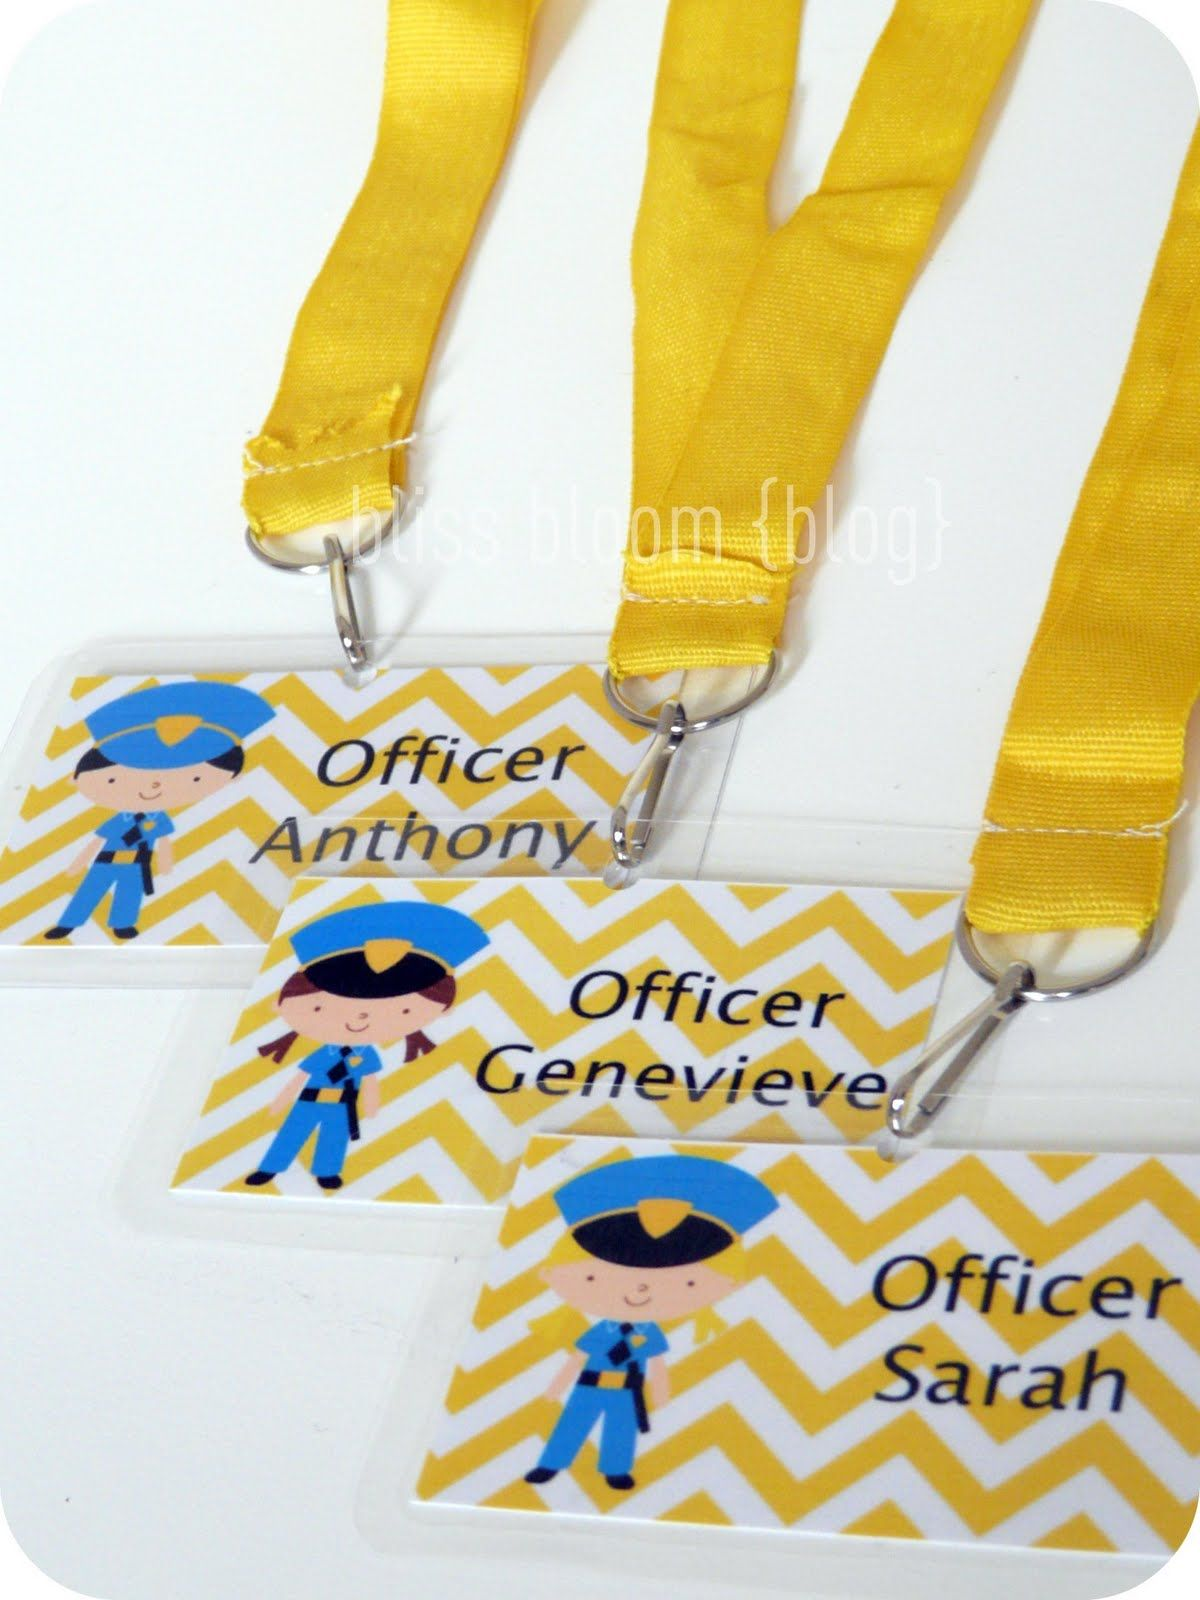 police themed party lots of fantastic ideas here for favours